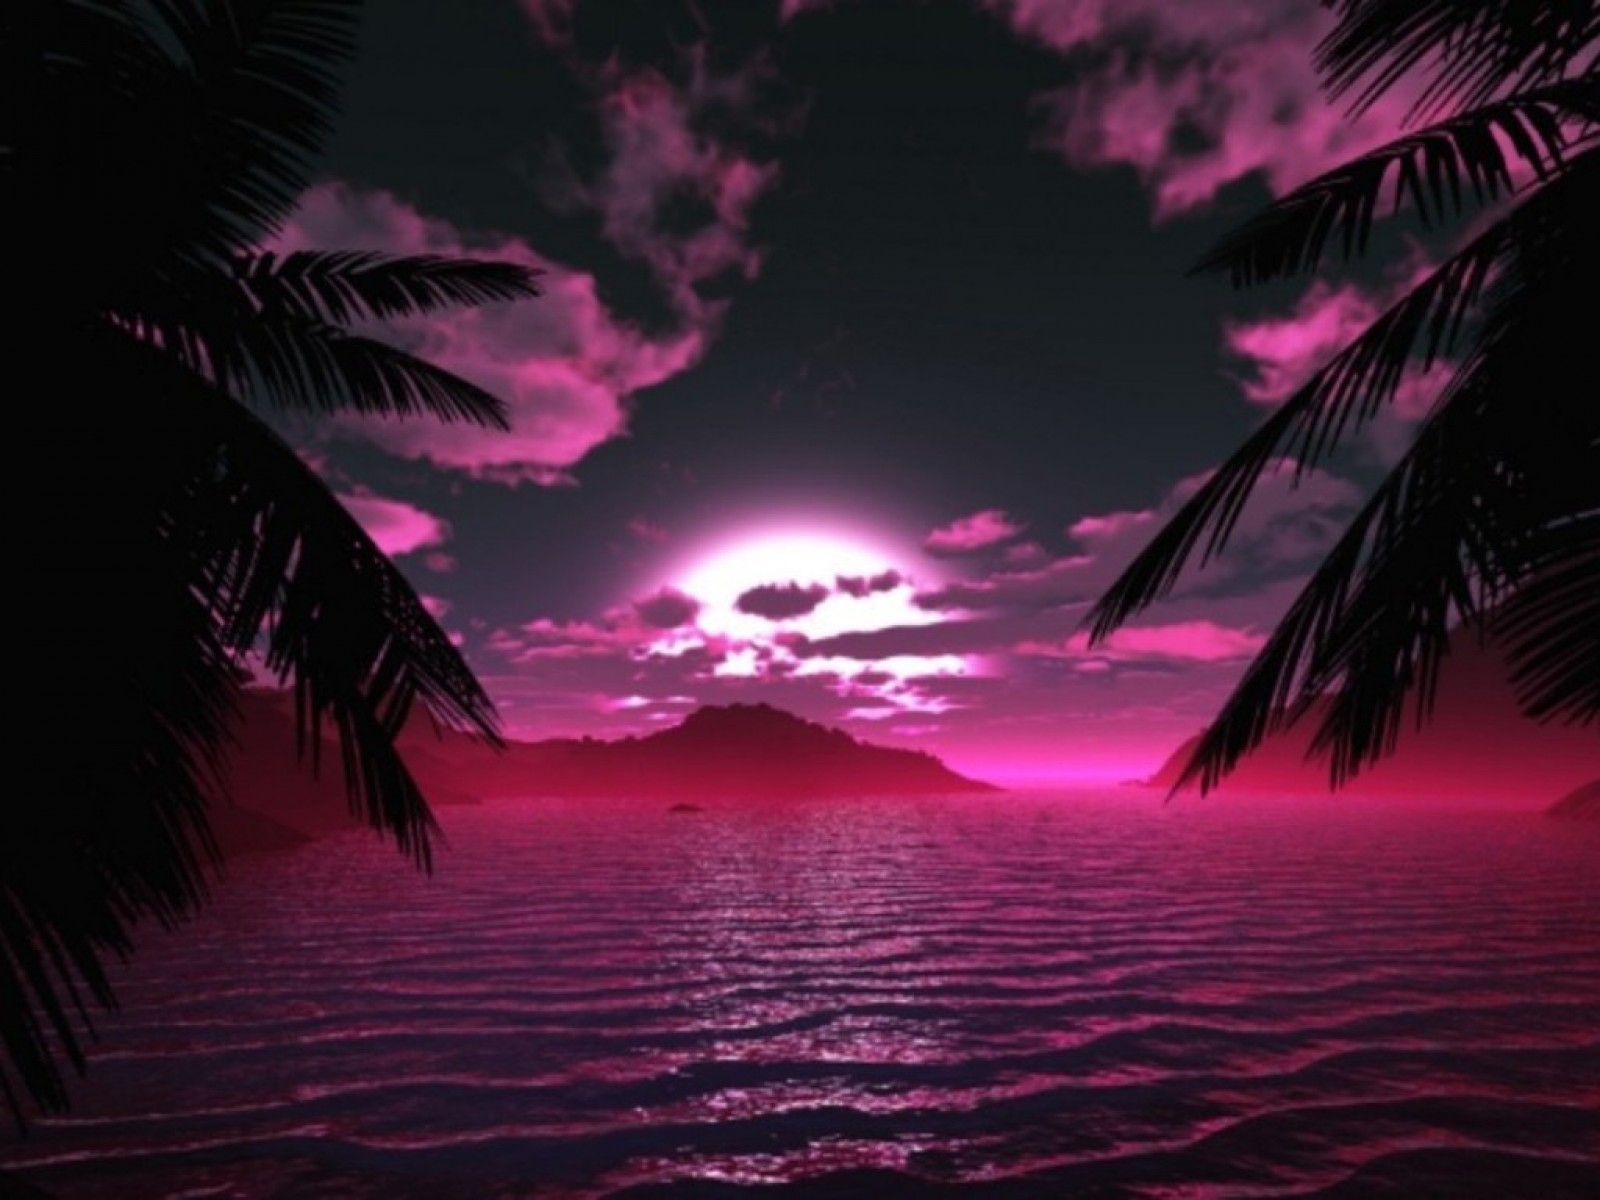 Pinkish Sunset Wallpaper Free Download Wallpapers